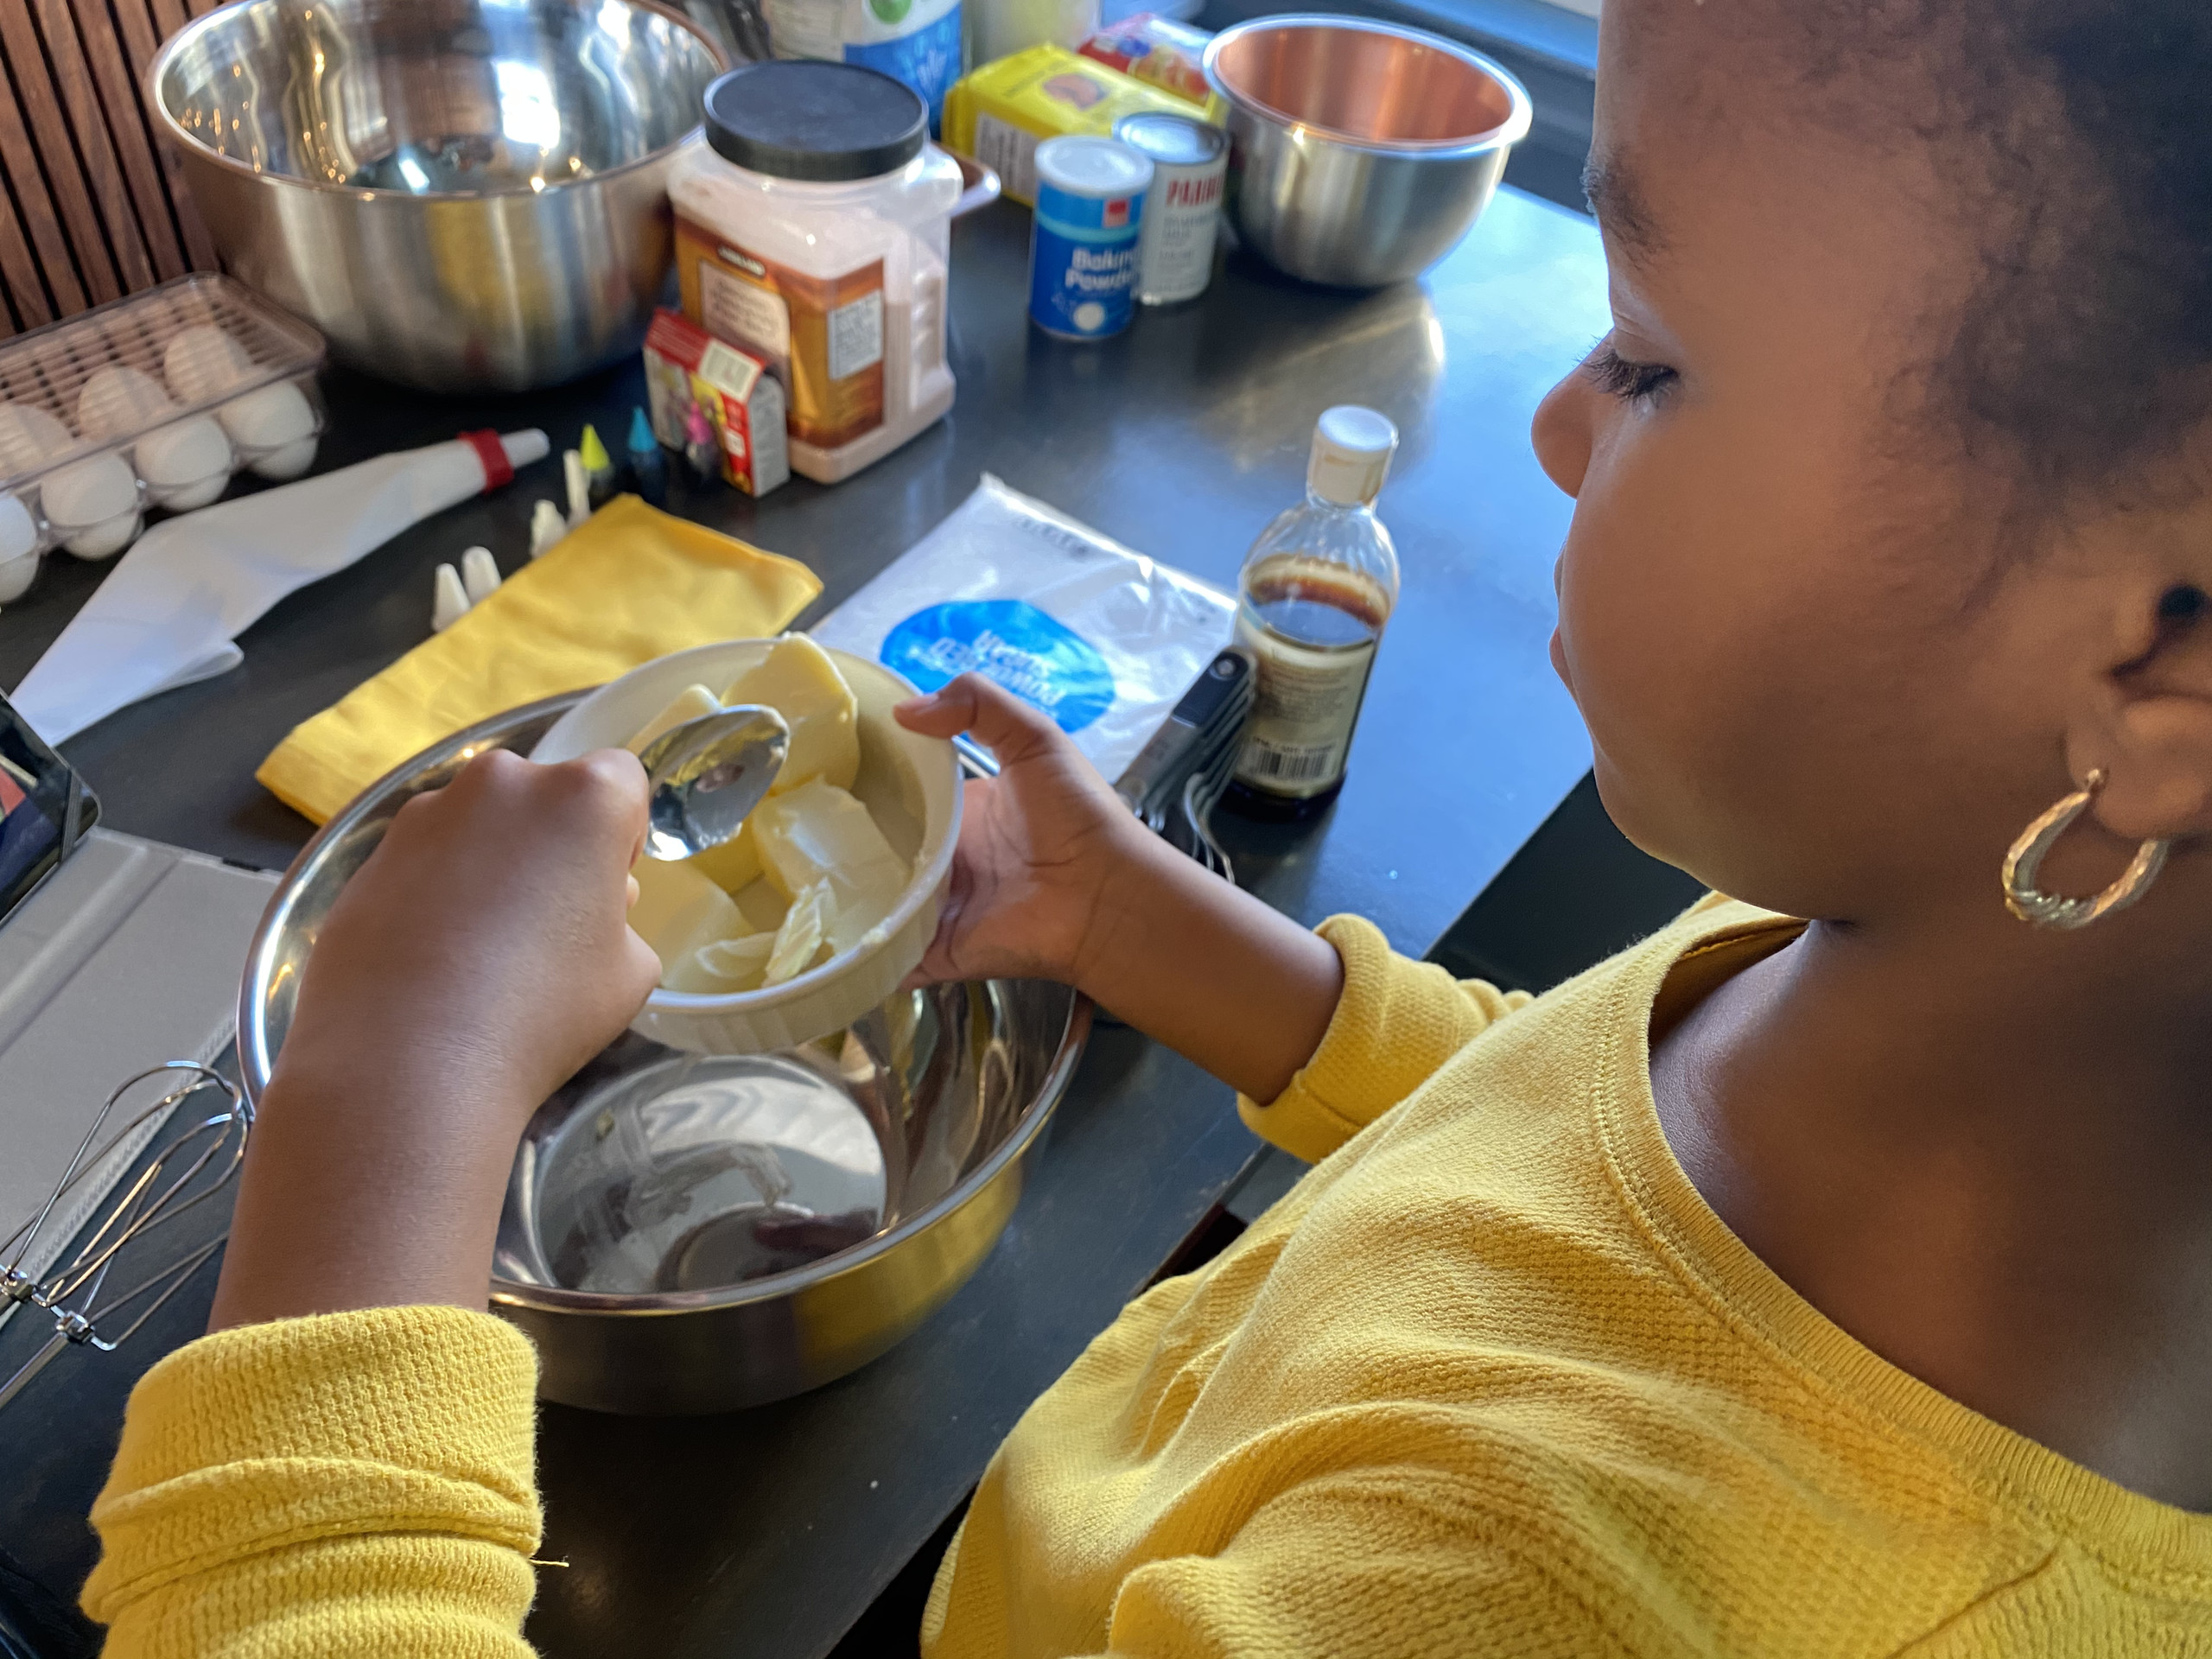 A view from over the shoulder of a medium-dark skinned girl baking at a counter that showcases a wide array of baking ingredients. She scoops chunks of butter into an empty, shiny, silver bowl, and wears earrings and a yellow shirt with sleeves rolled up.